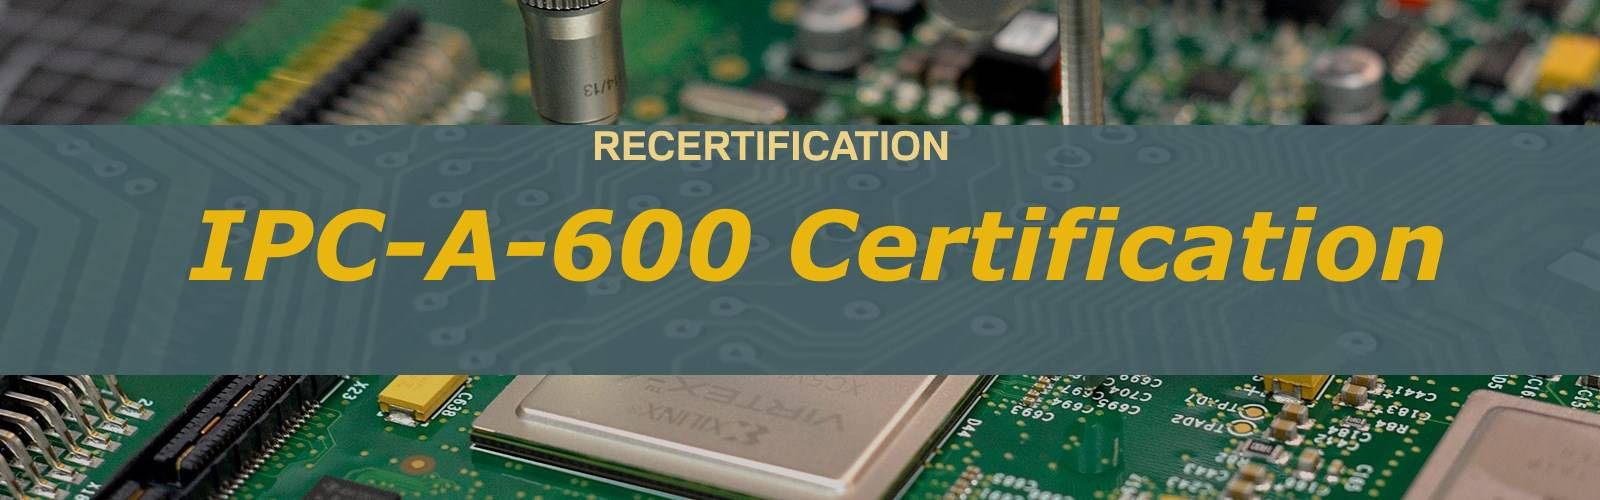 RECERTIFICATION IPC-A-600 CERTIFIED IPC SPECIALIST (CIS)